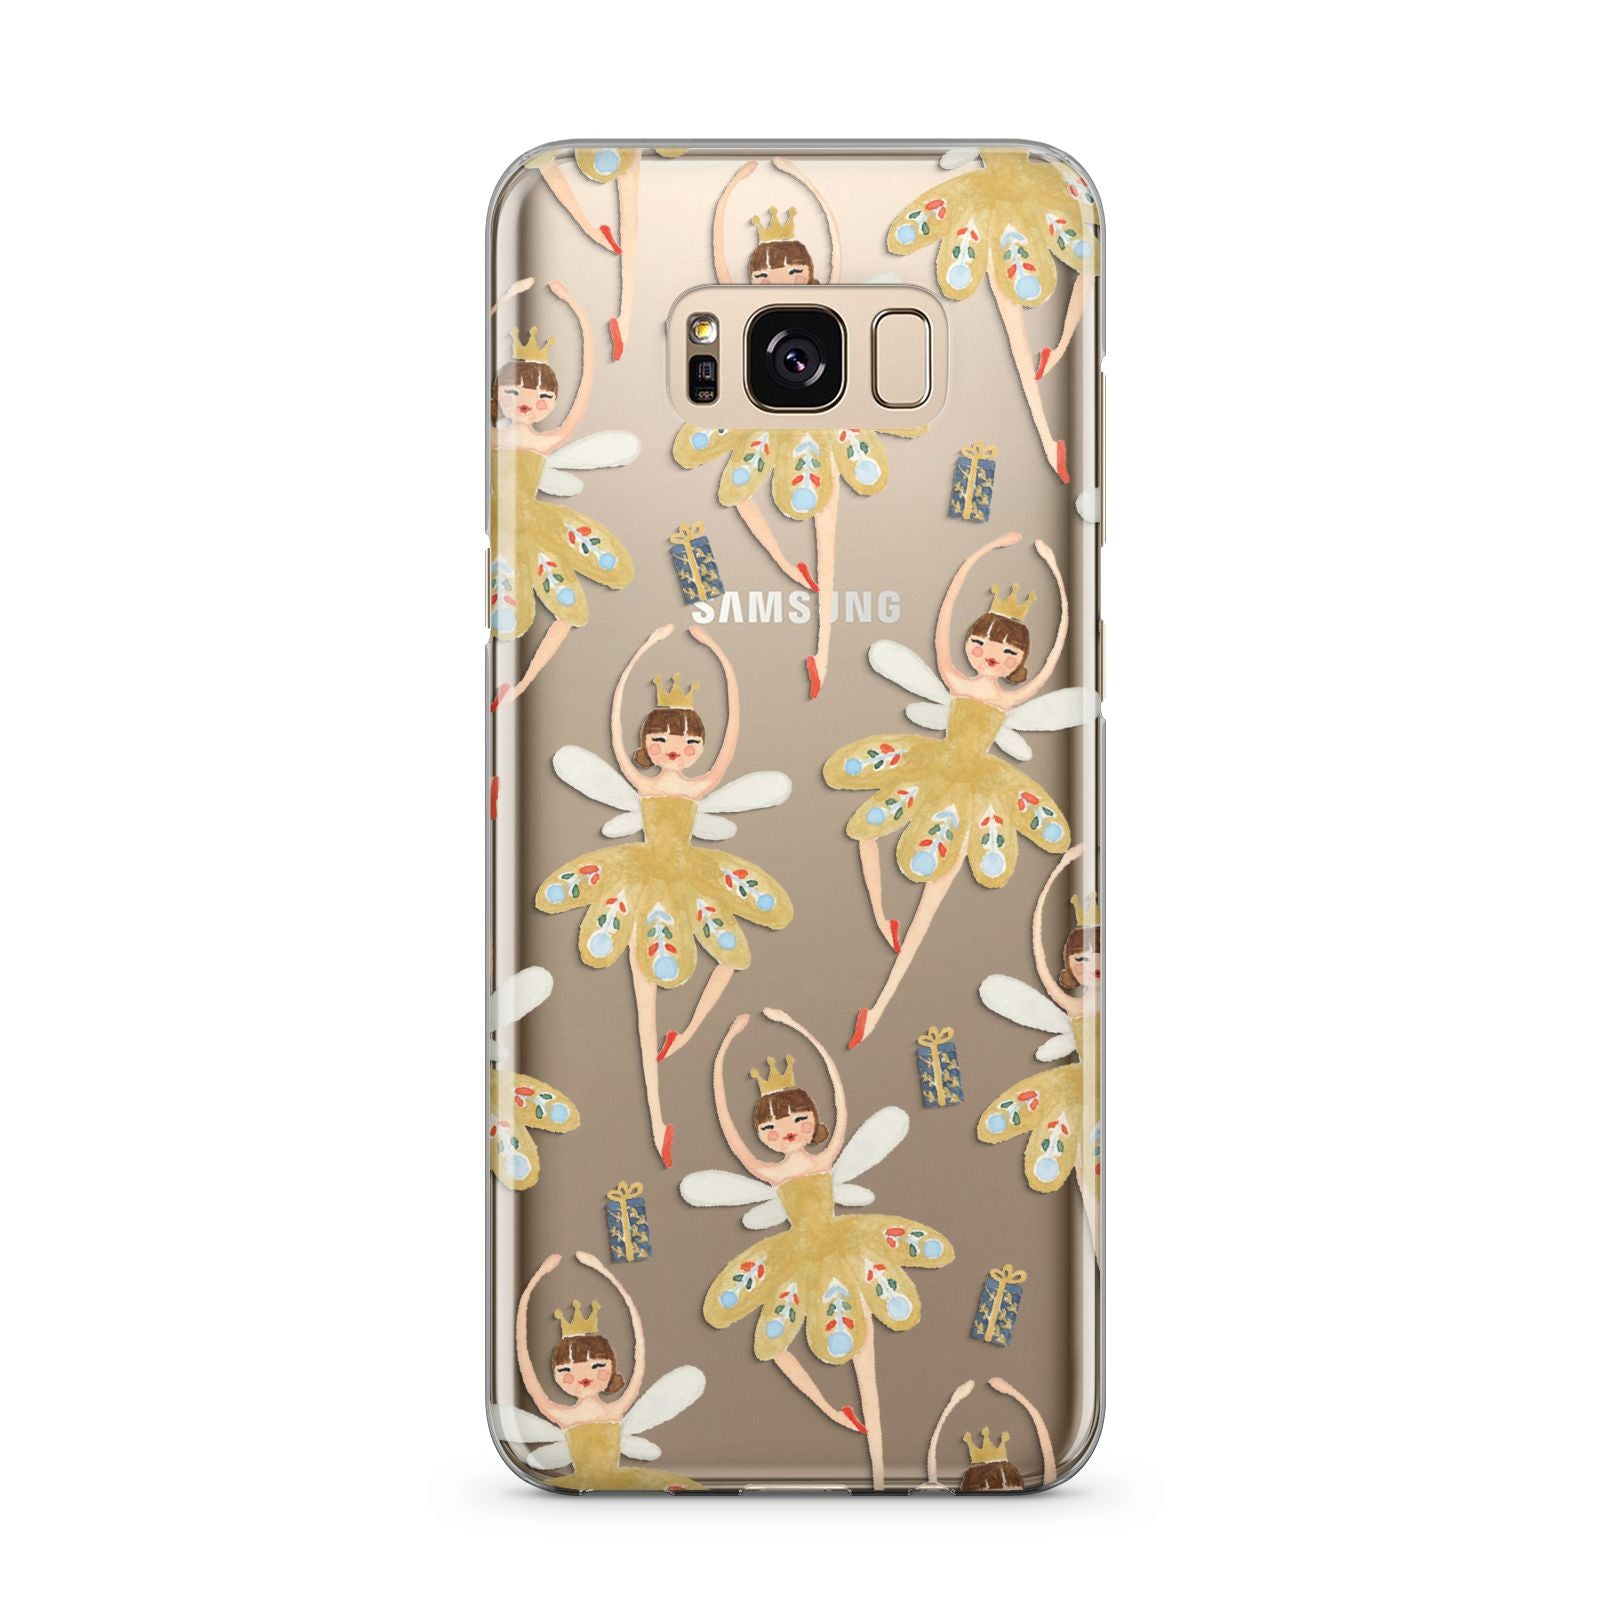 Dancing ballerina princess Samsung Galaxy S8 Plus Case